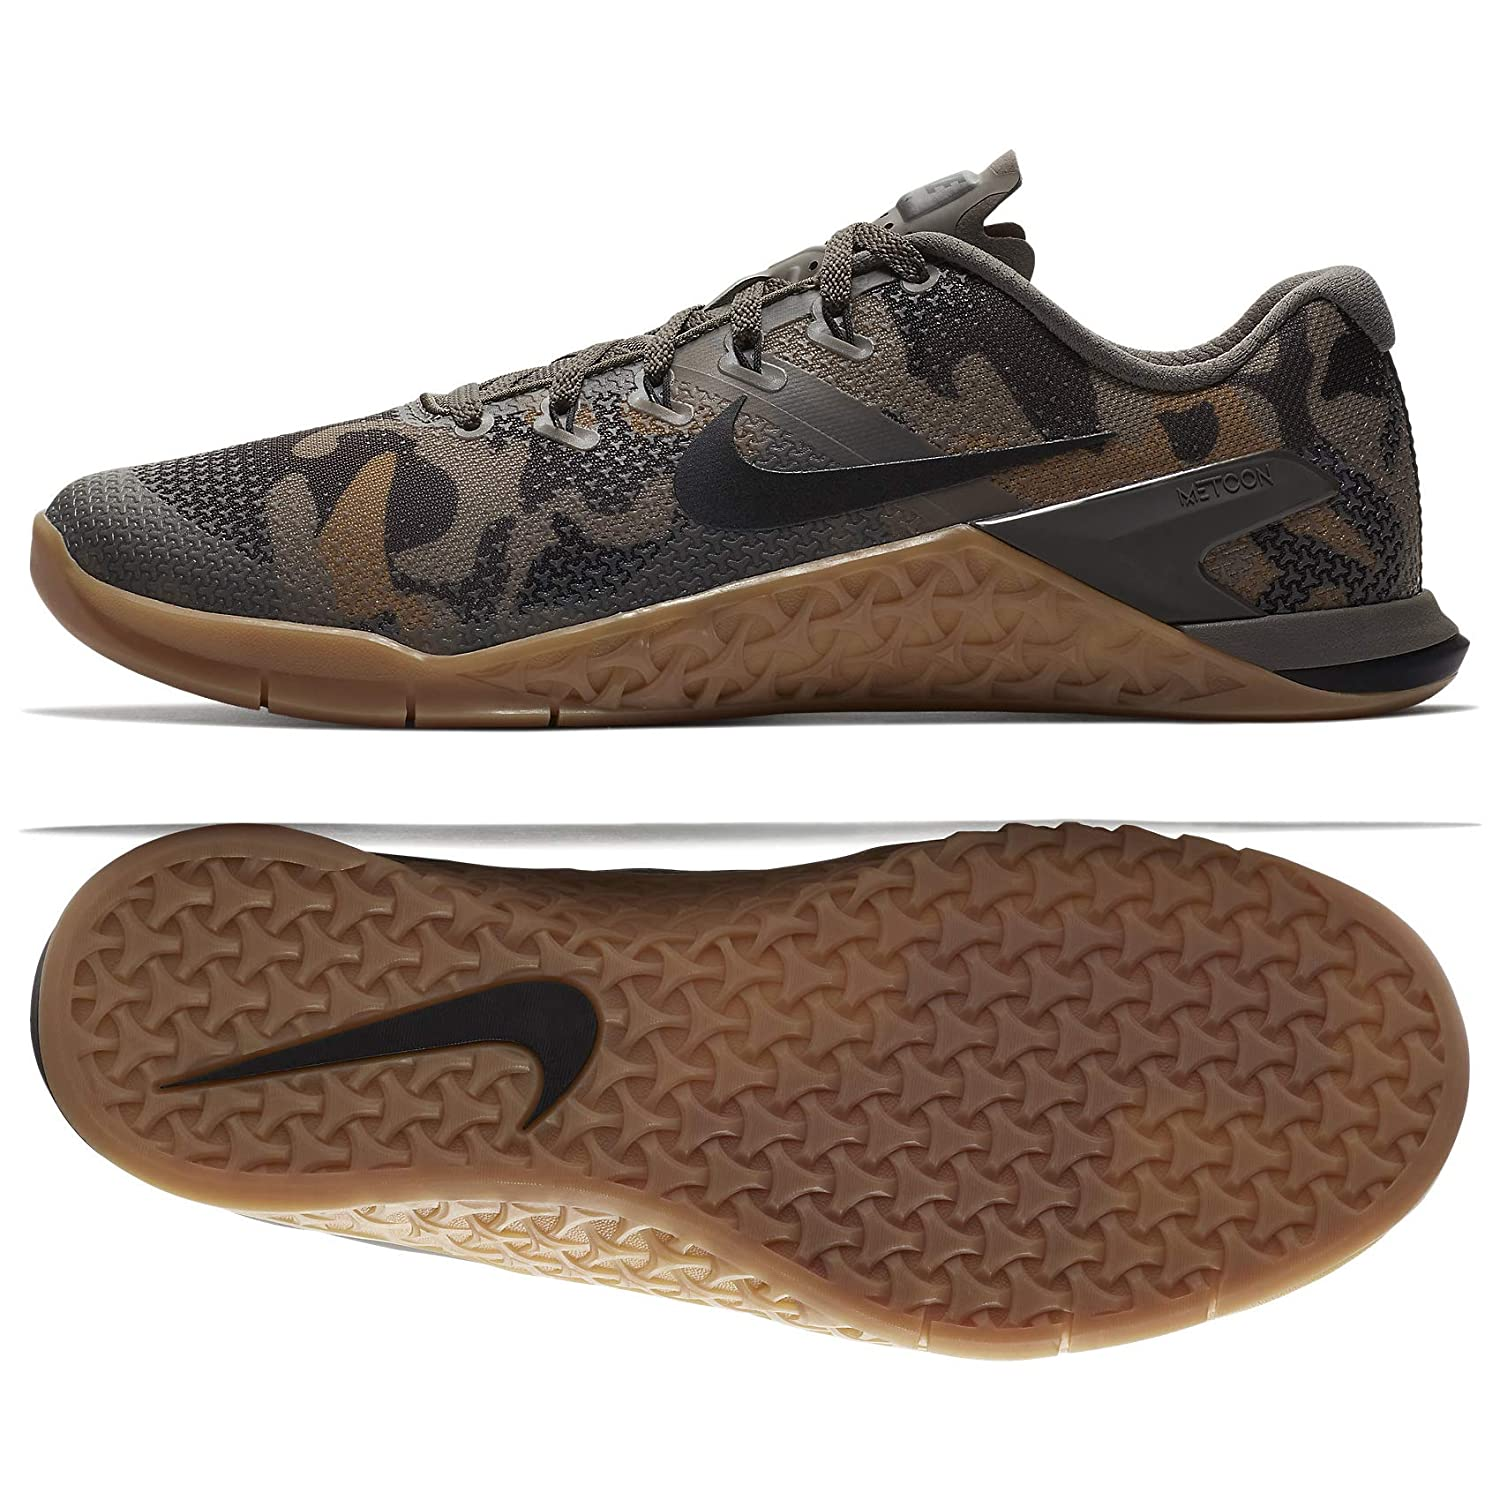 reputable site 1212f 10945 Nike Men s Metcon 4 Training Shoe Brown (13)  Buy Online at Low Prices in  India - Amazon.in